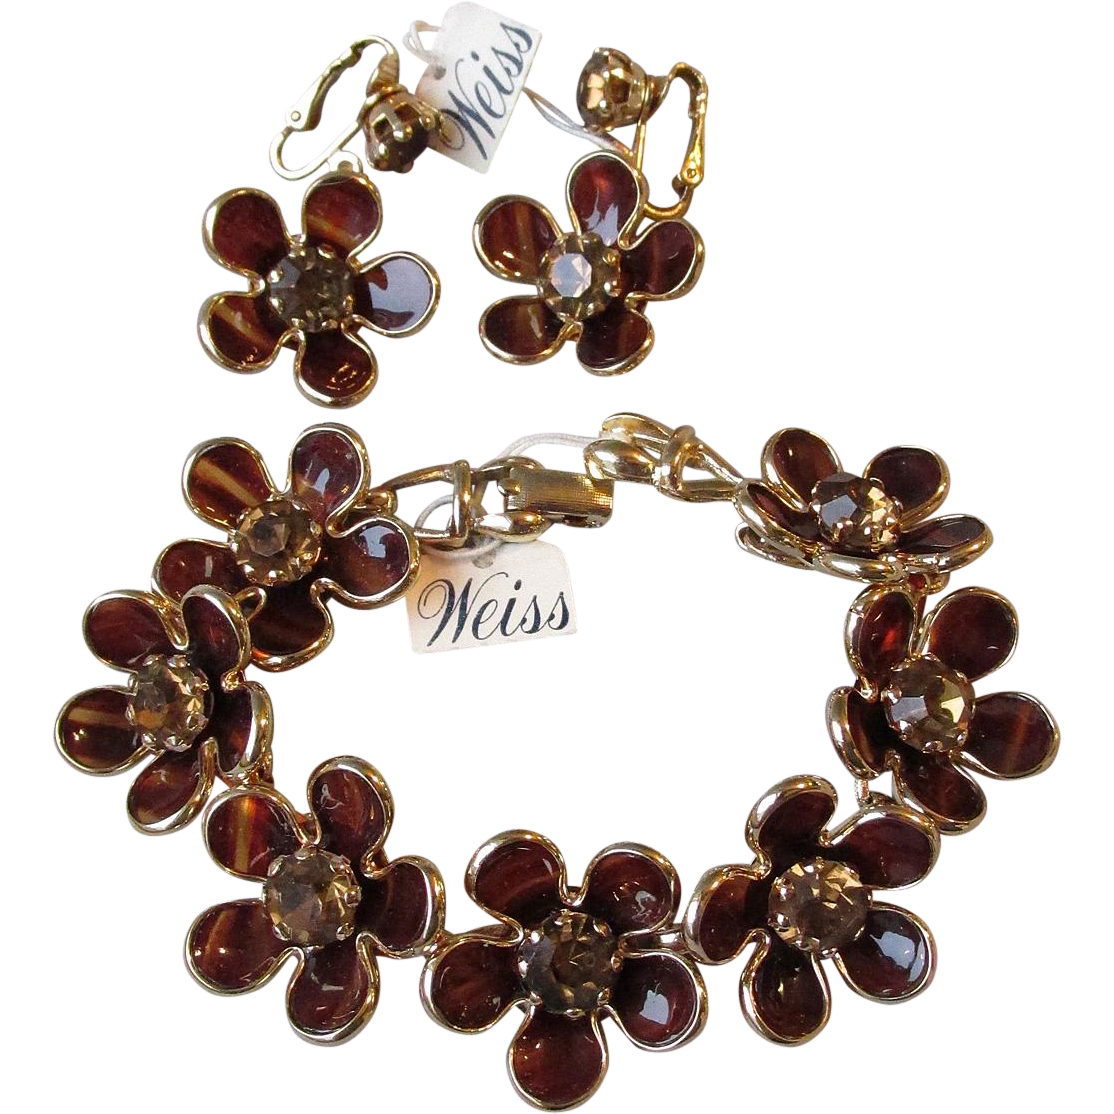 Vintage WEISS Mod 1960's Bezel Set Rhinestone Floral Bracelet & Earrings Set, NEW With Tags!